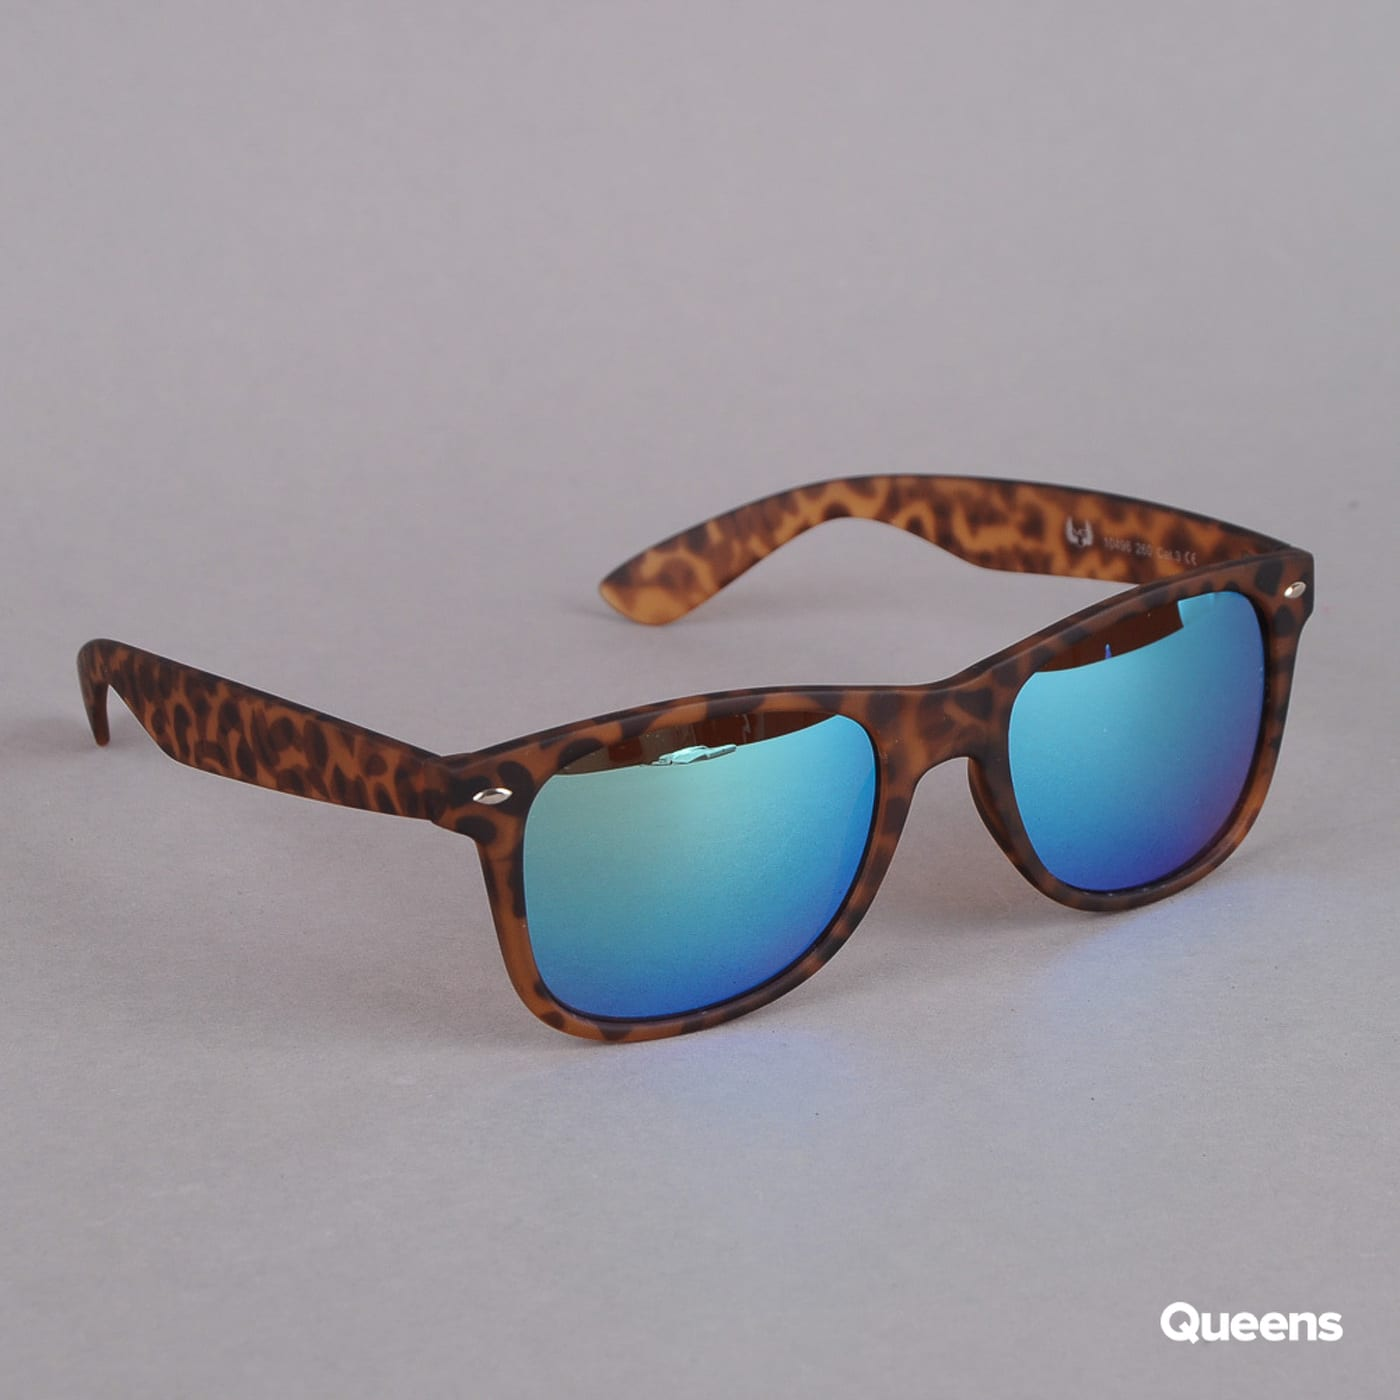 MD Sunglasses Likoma Mirror brown / blue